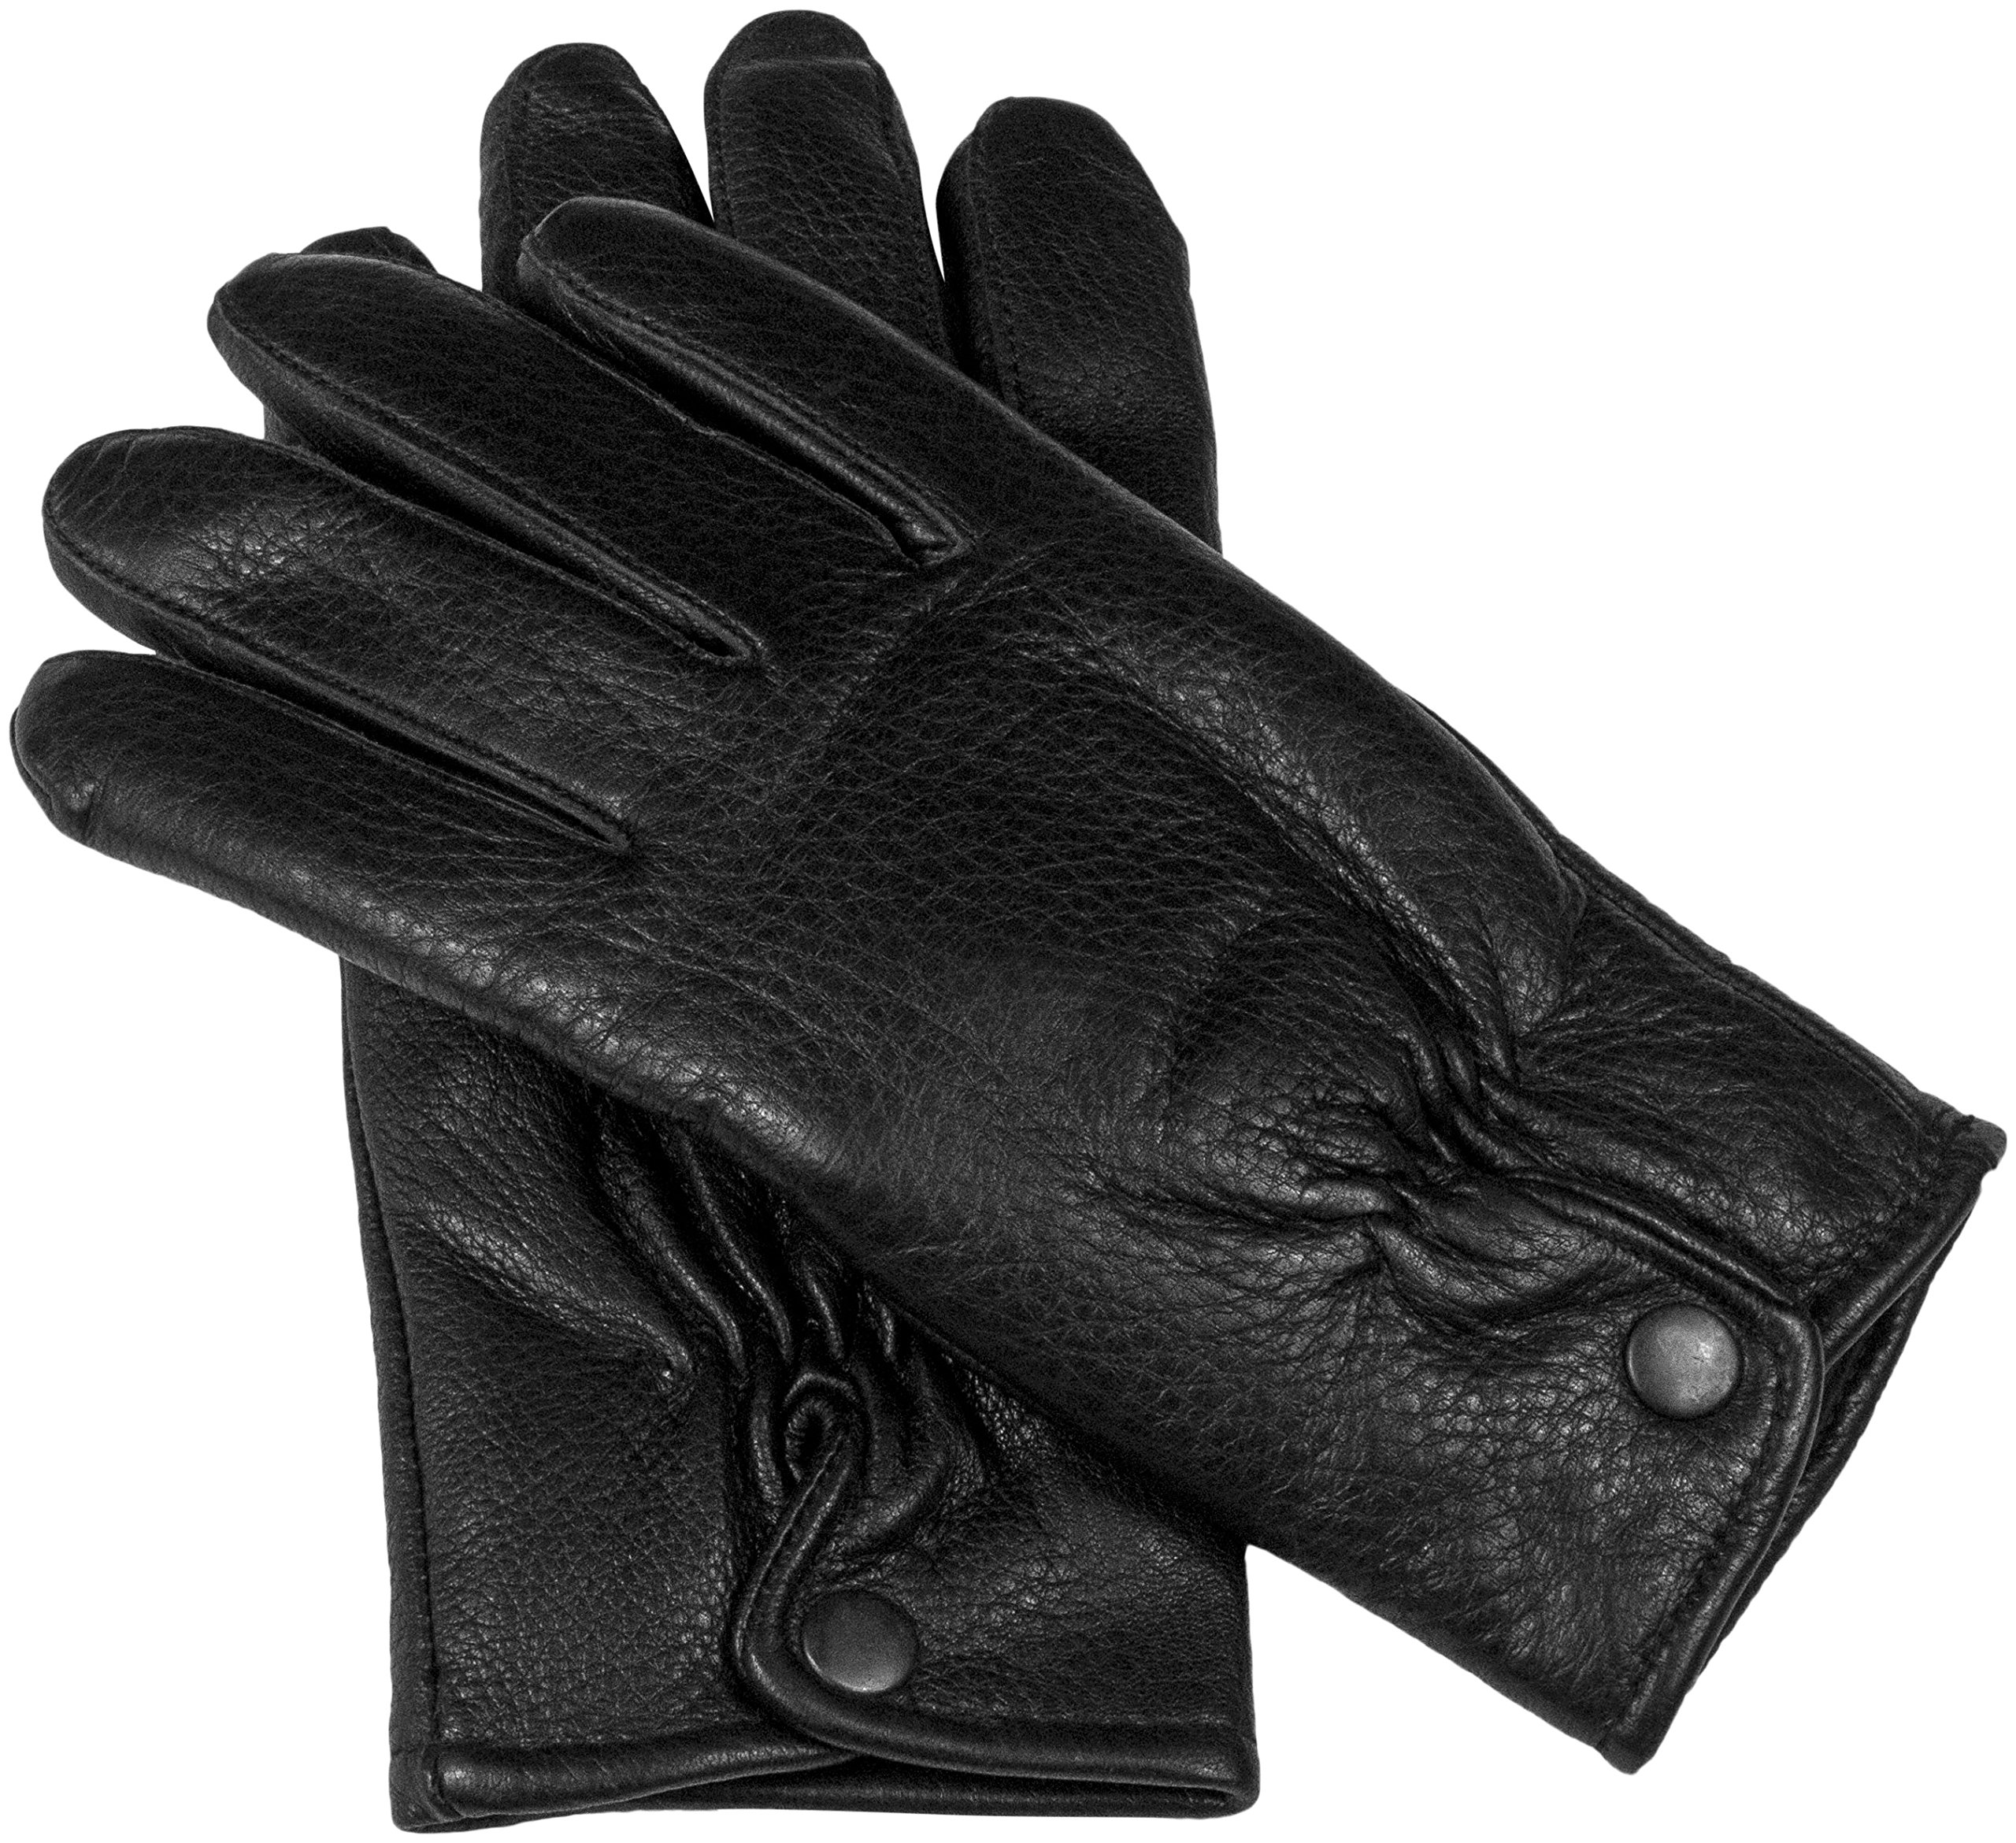 Women's Luxury Deerskin Leather Winter Gloves with Warm Insulated Fleece Lining (S/M, Black)